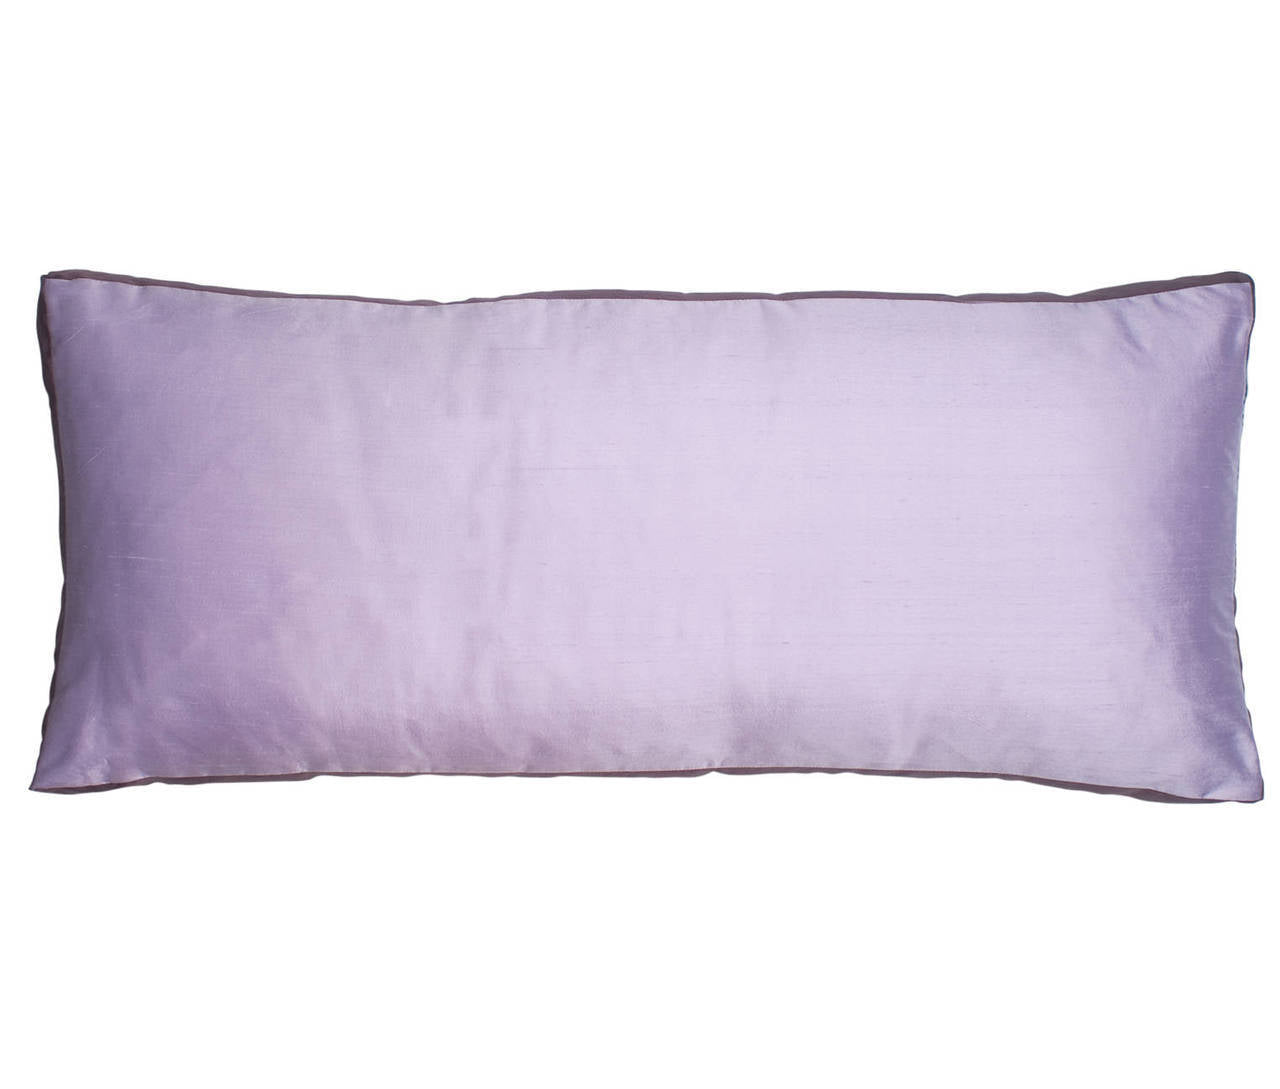 Profiles Silk Plum Box Pillow Mystic Valley Traders - unique linens online